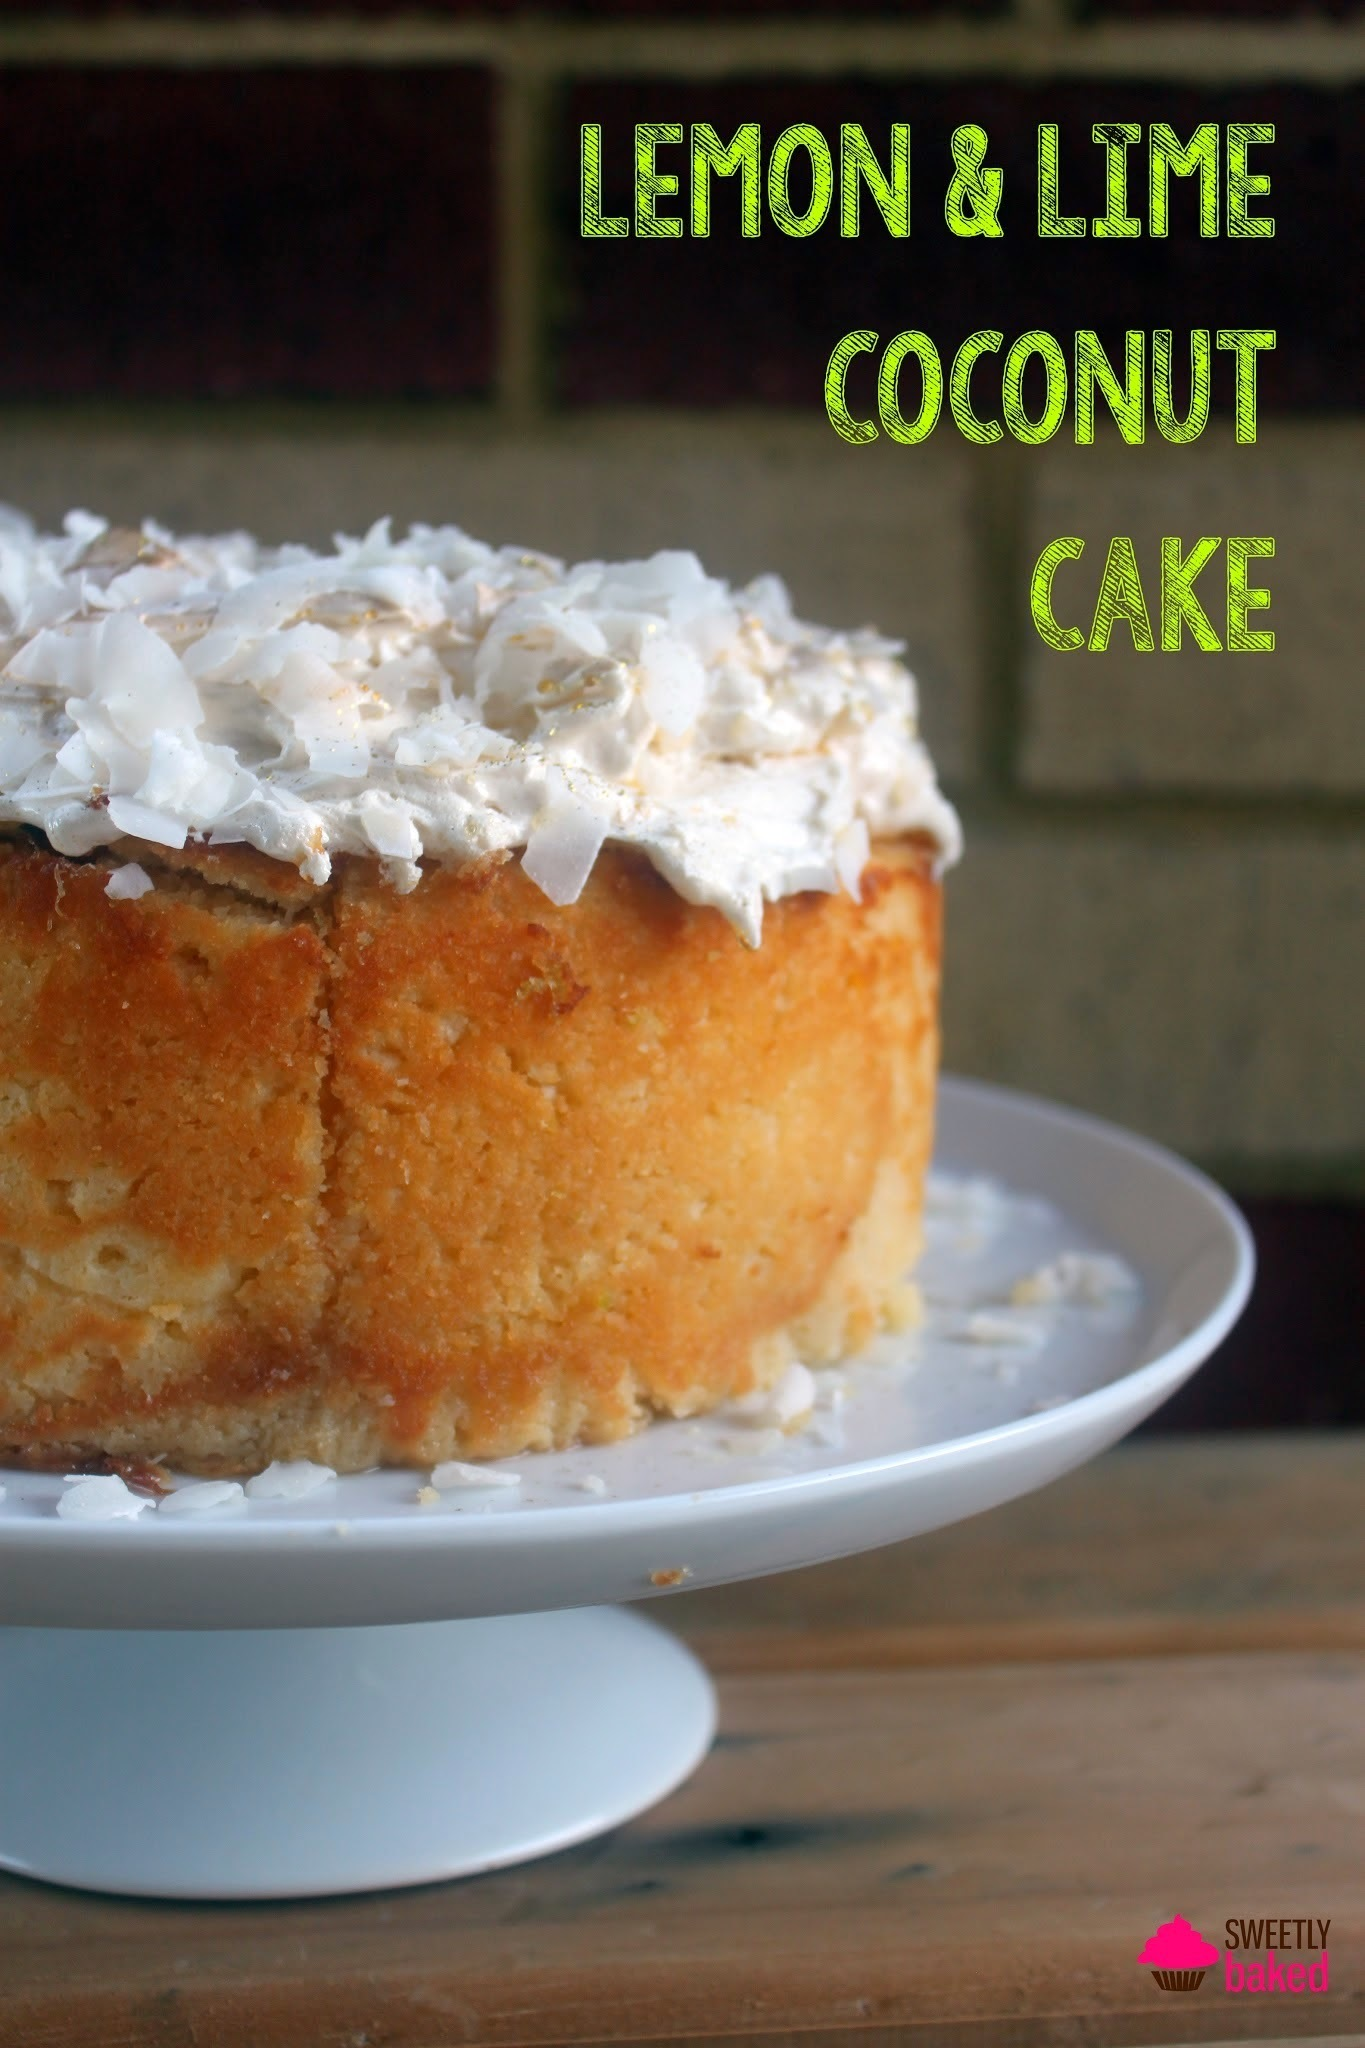 Recipe of the Week - Lemon & Lime Coconut Cake